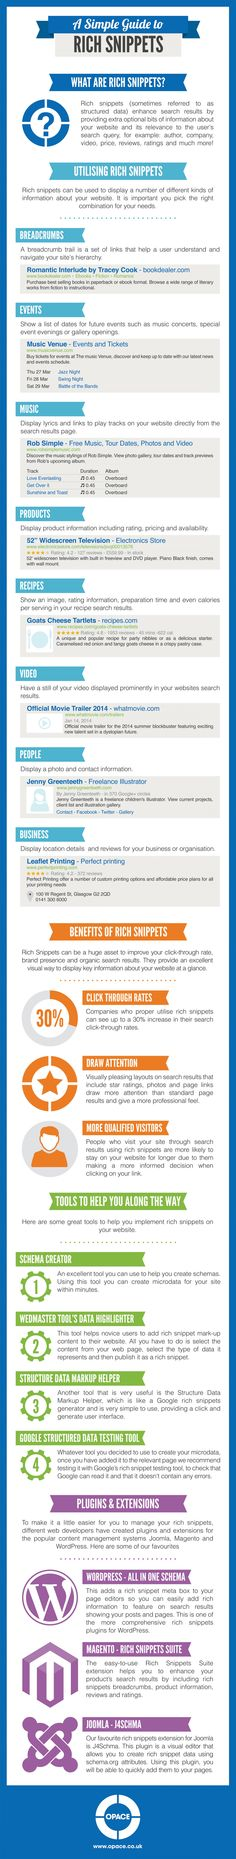 A Simple Guide to Rich Snippets #infographic | via #BornToBeSocial - Pinterest Marketing